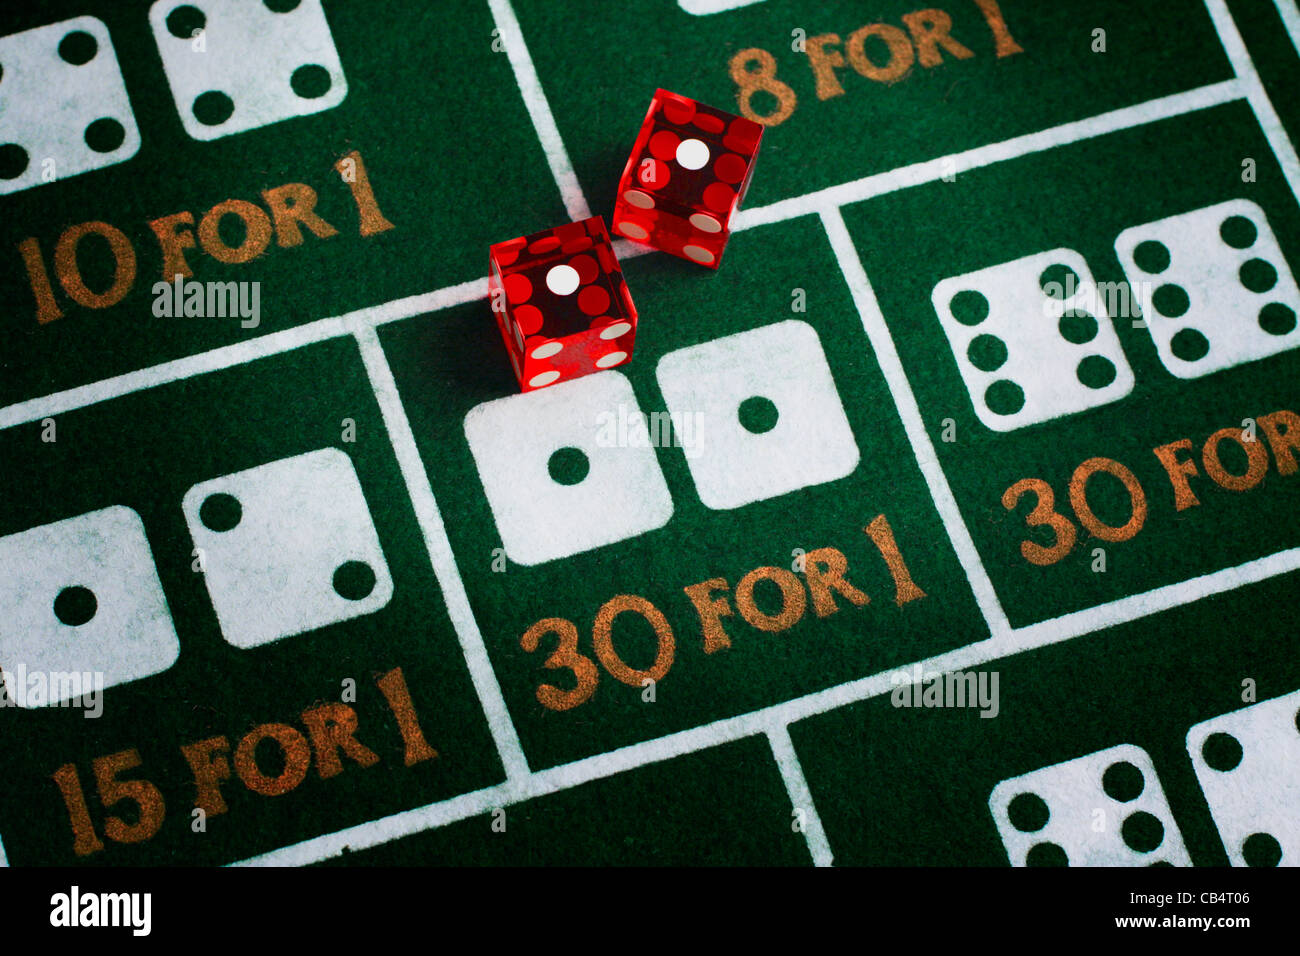 Casino dice roll snake eyes on a craps table felt - Stock Image